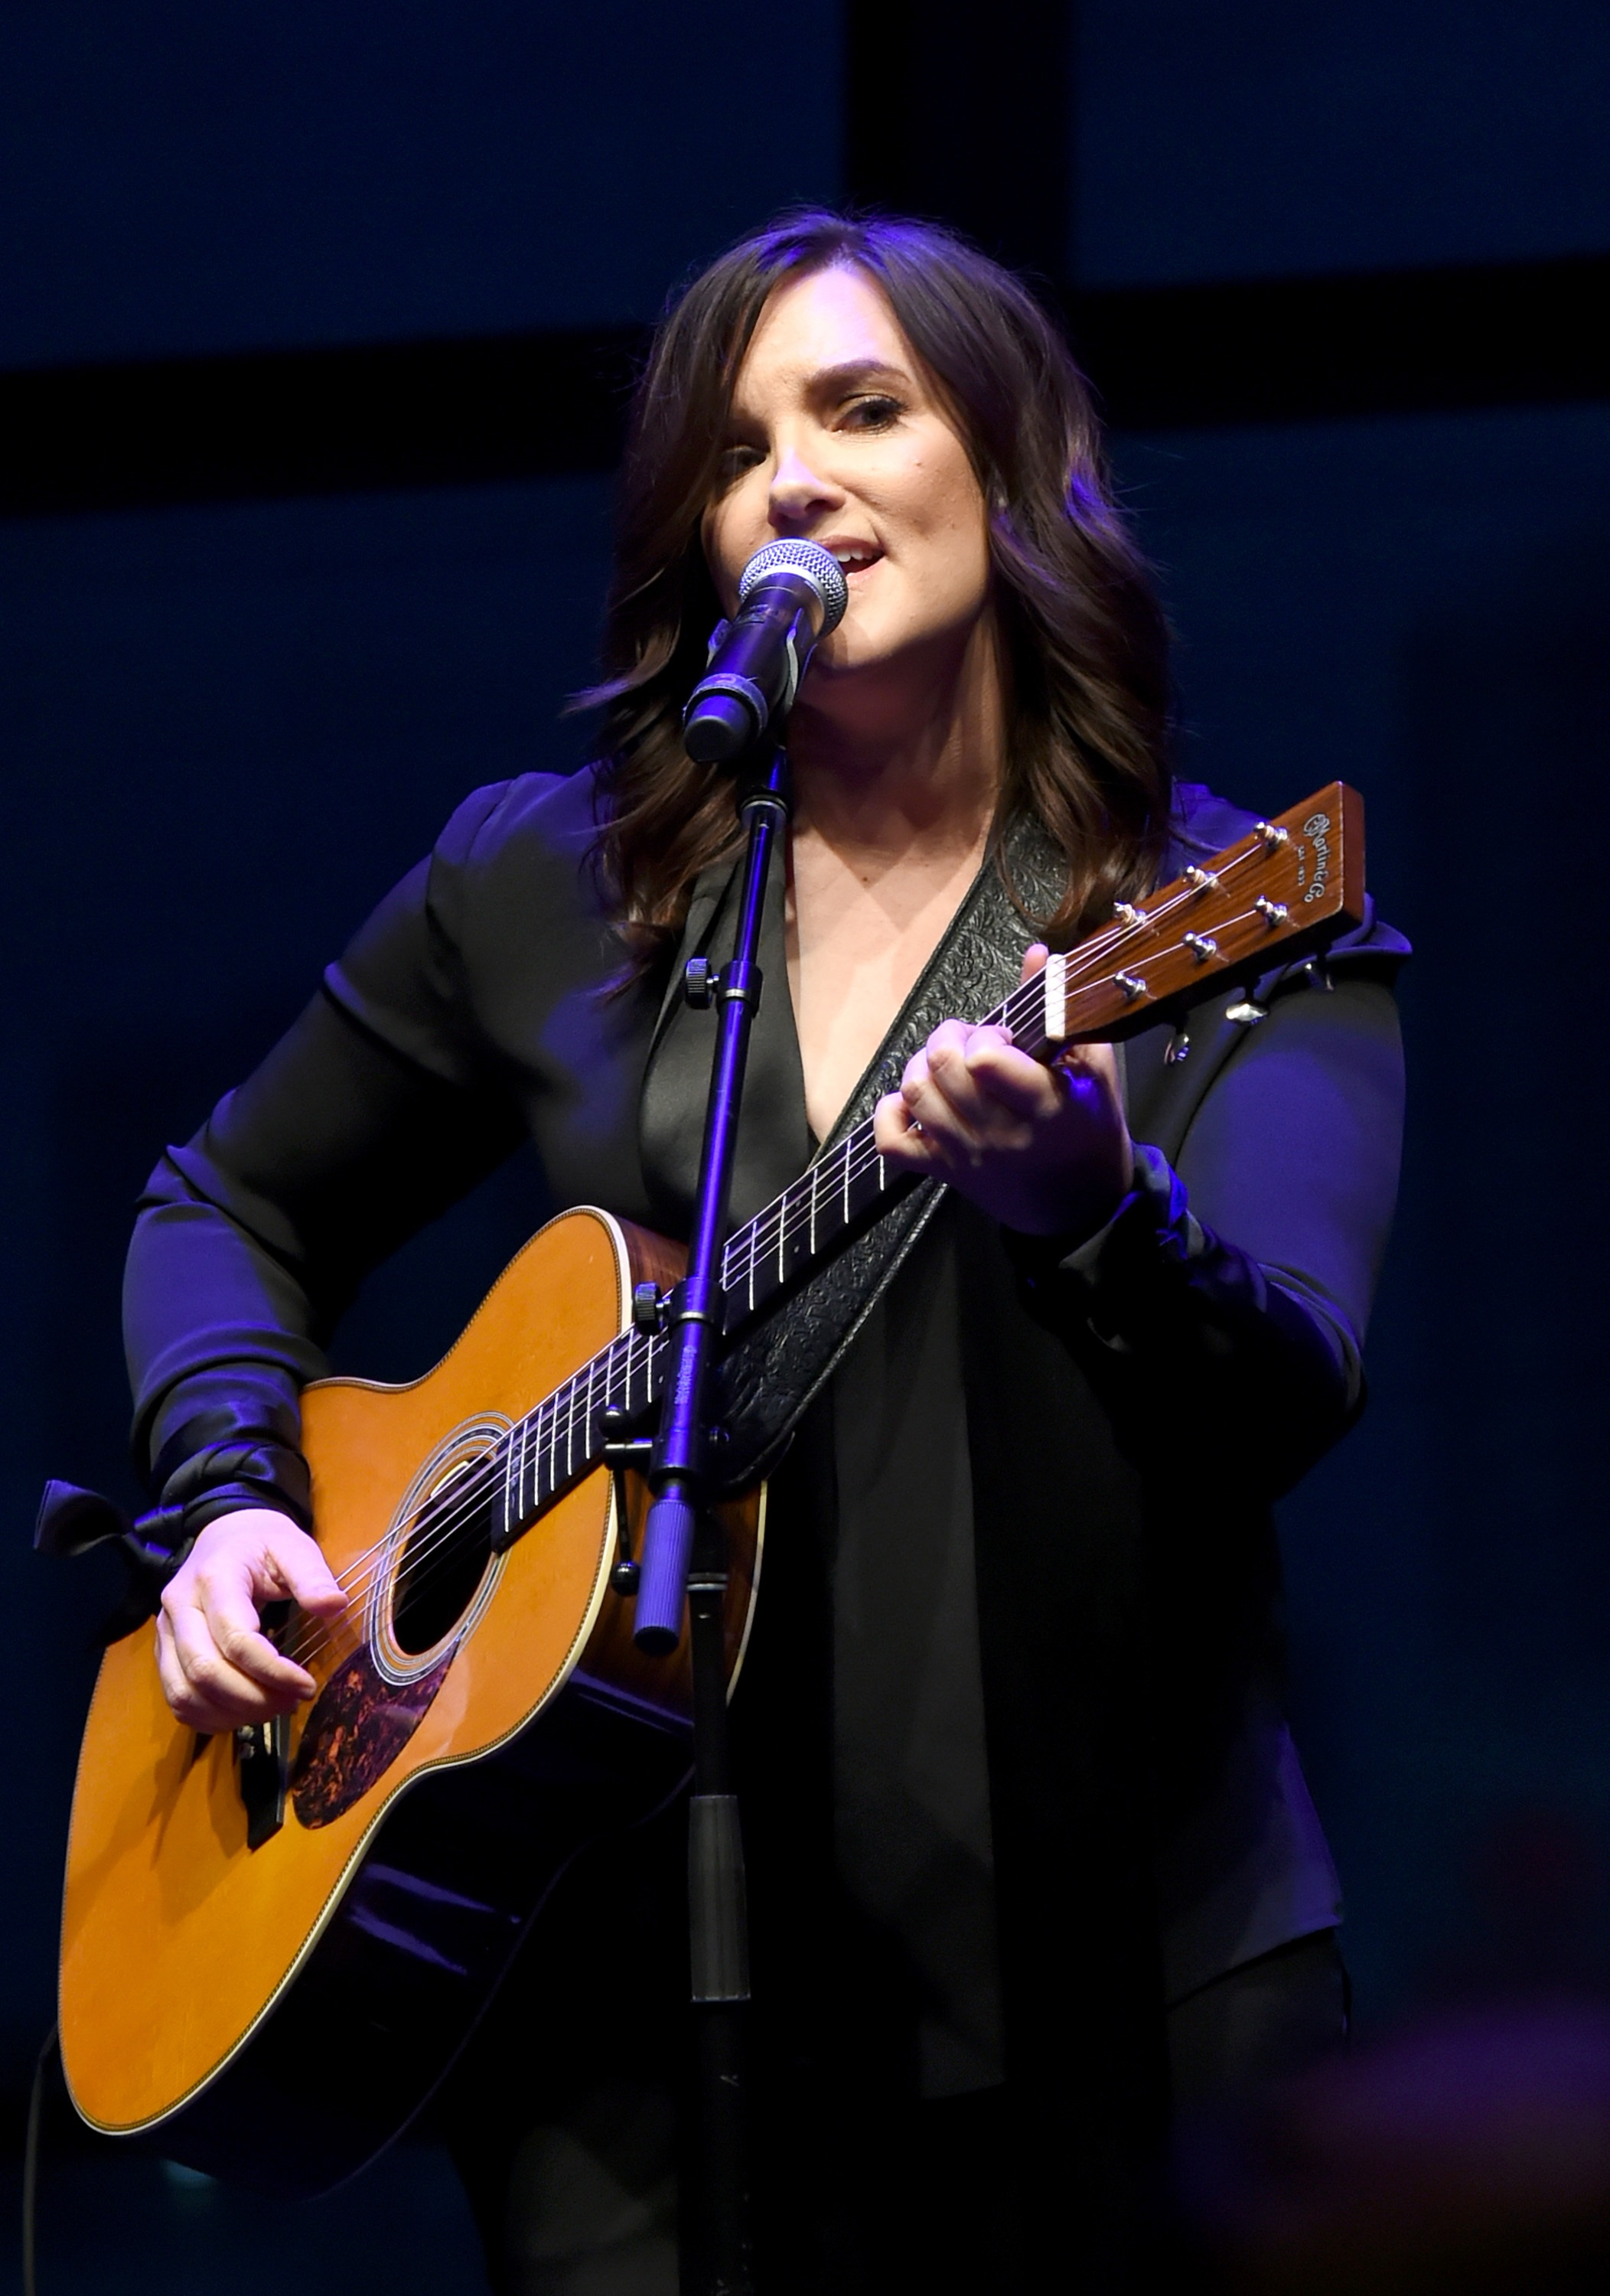 Brandy Clark; Photo by Rick Diamond/Getty Images for Country Music Hall Of Fame & Museum